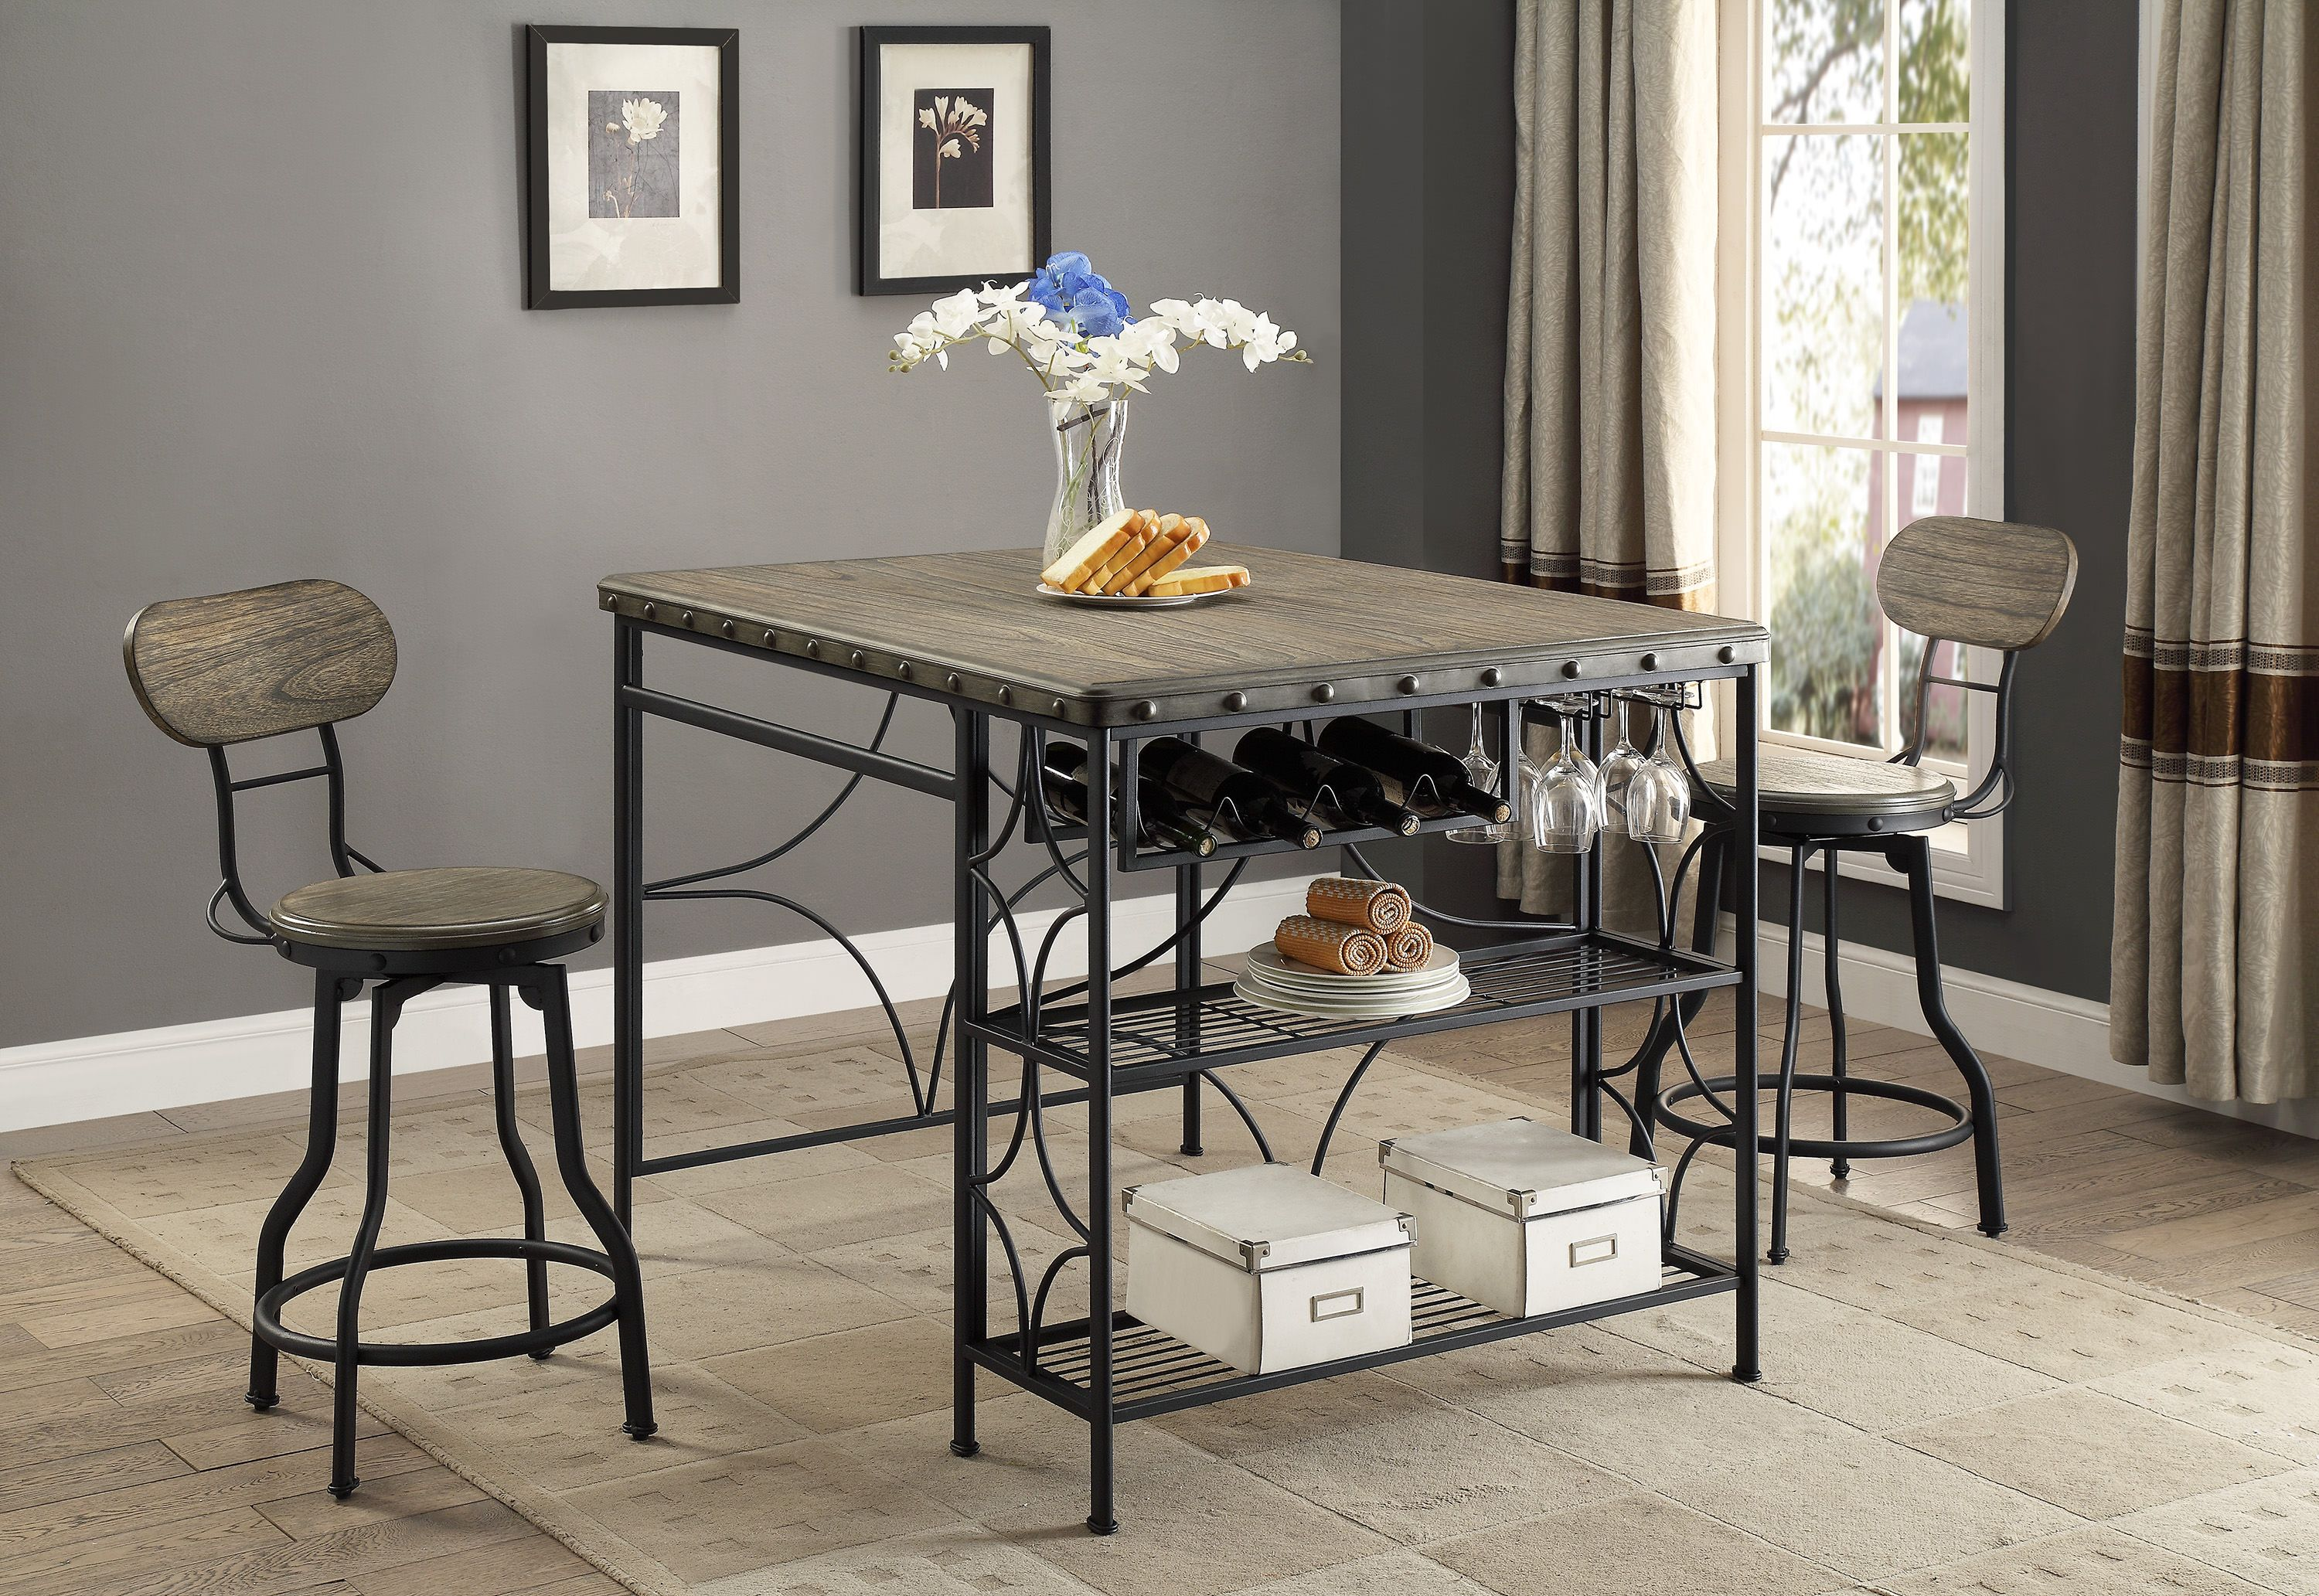 Engaging Counter Height Dining Sets At Walmart Counter Height